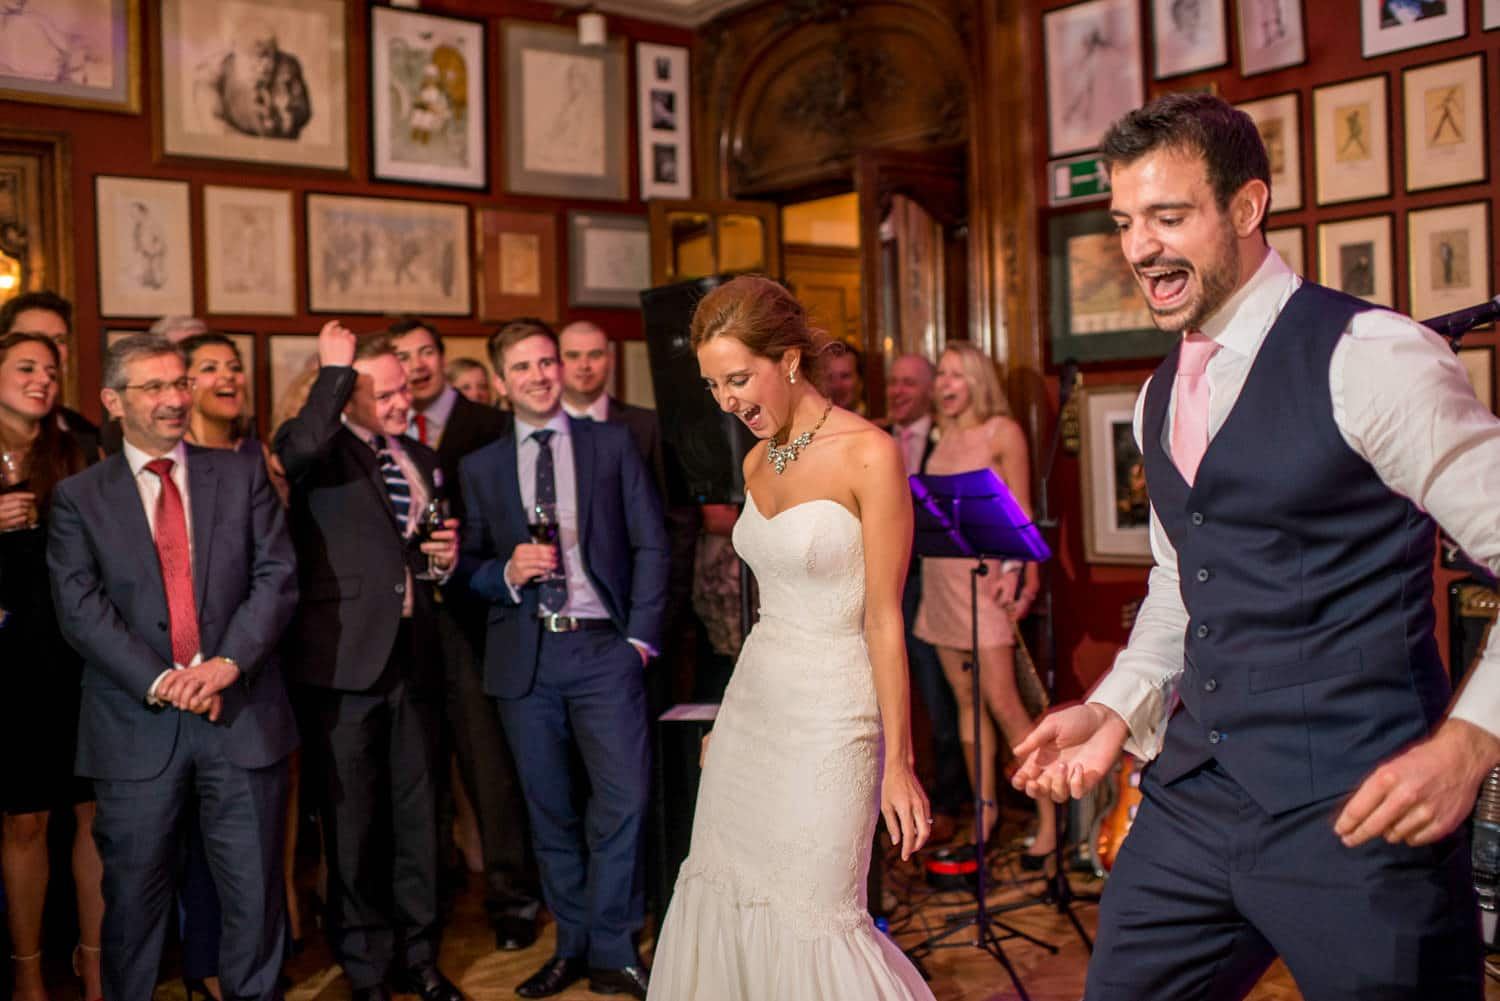 bride and groom dancing at The savile club wedding